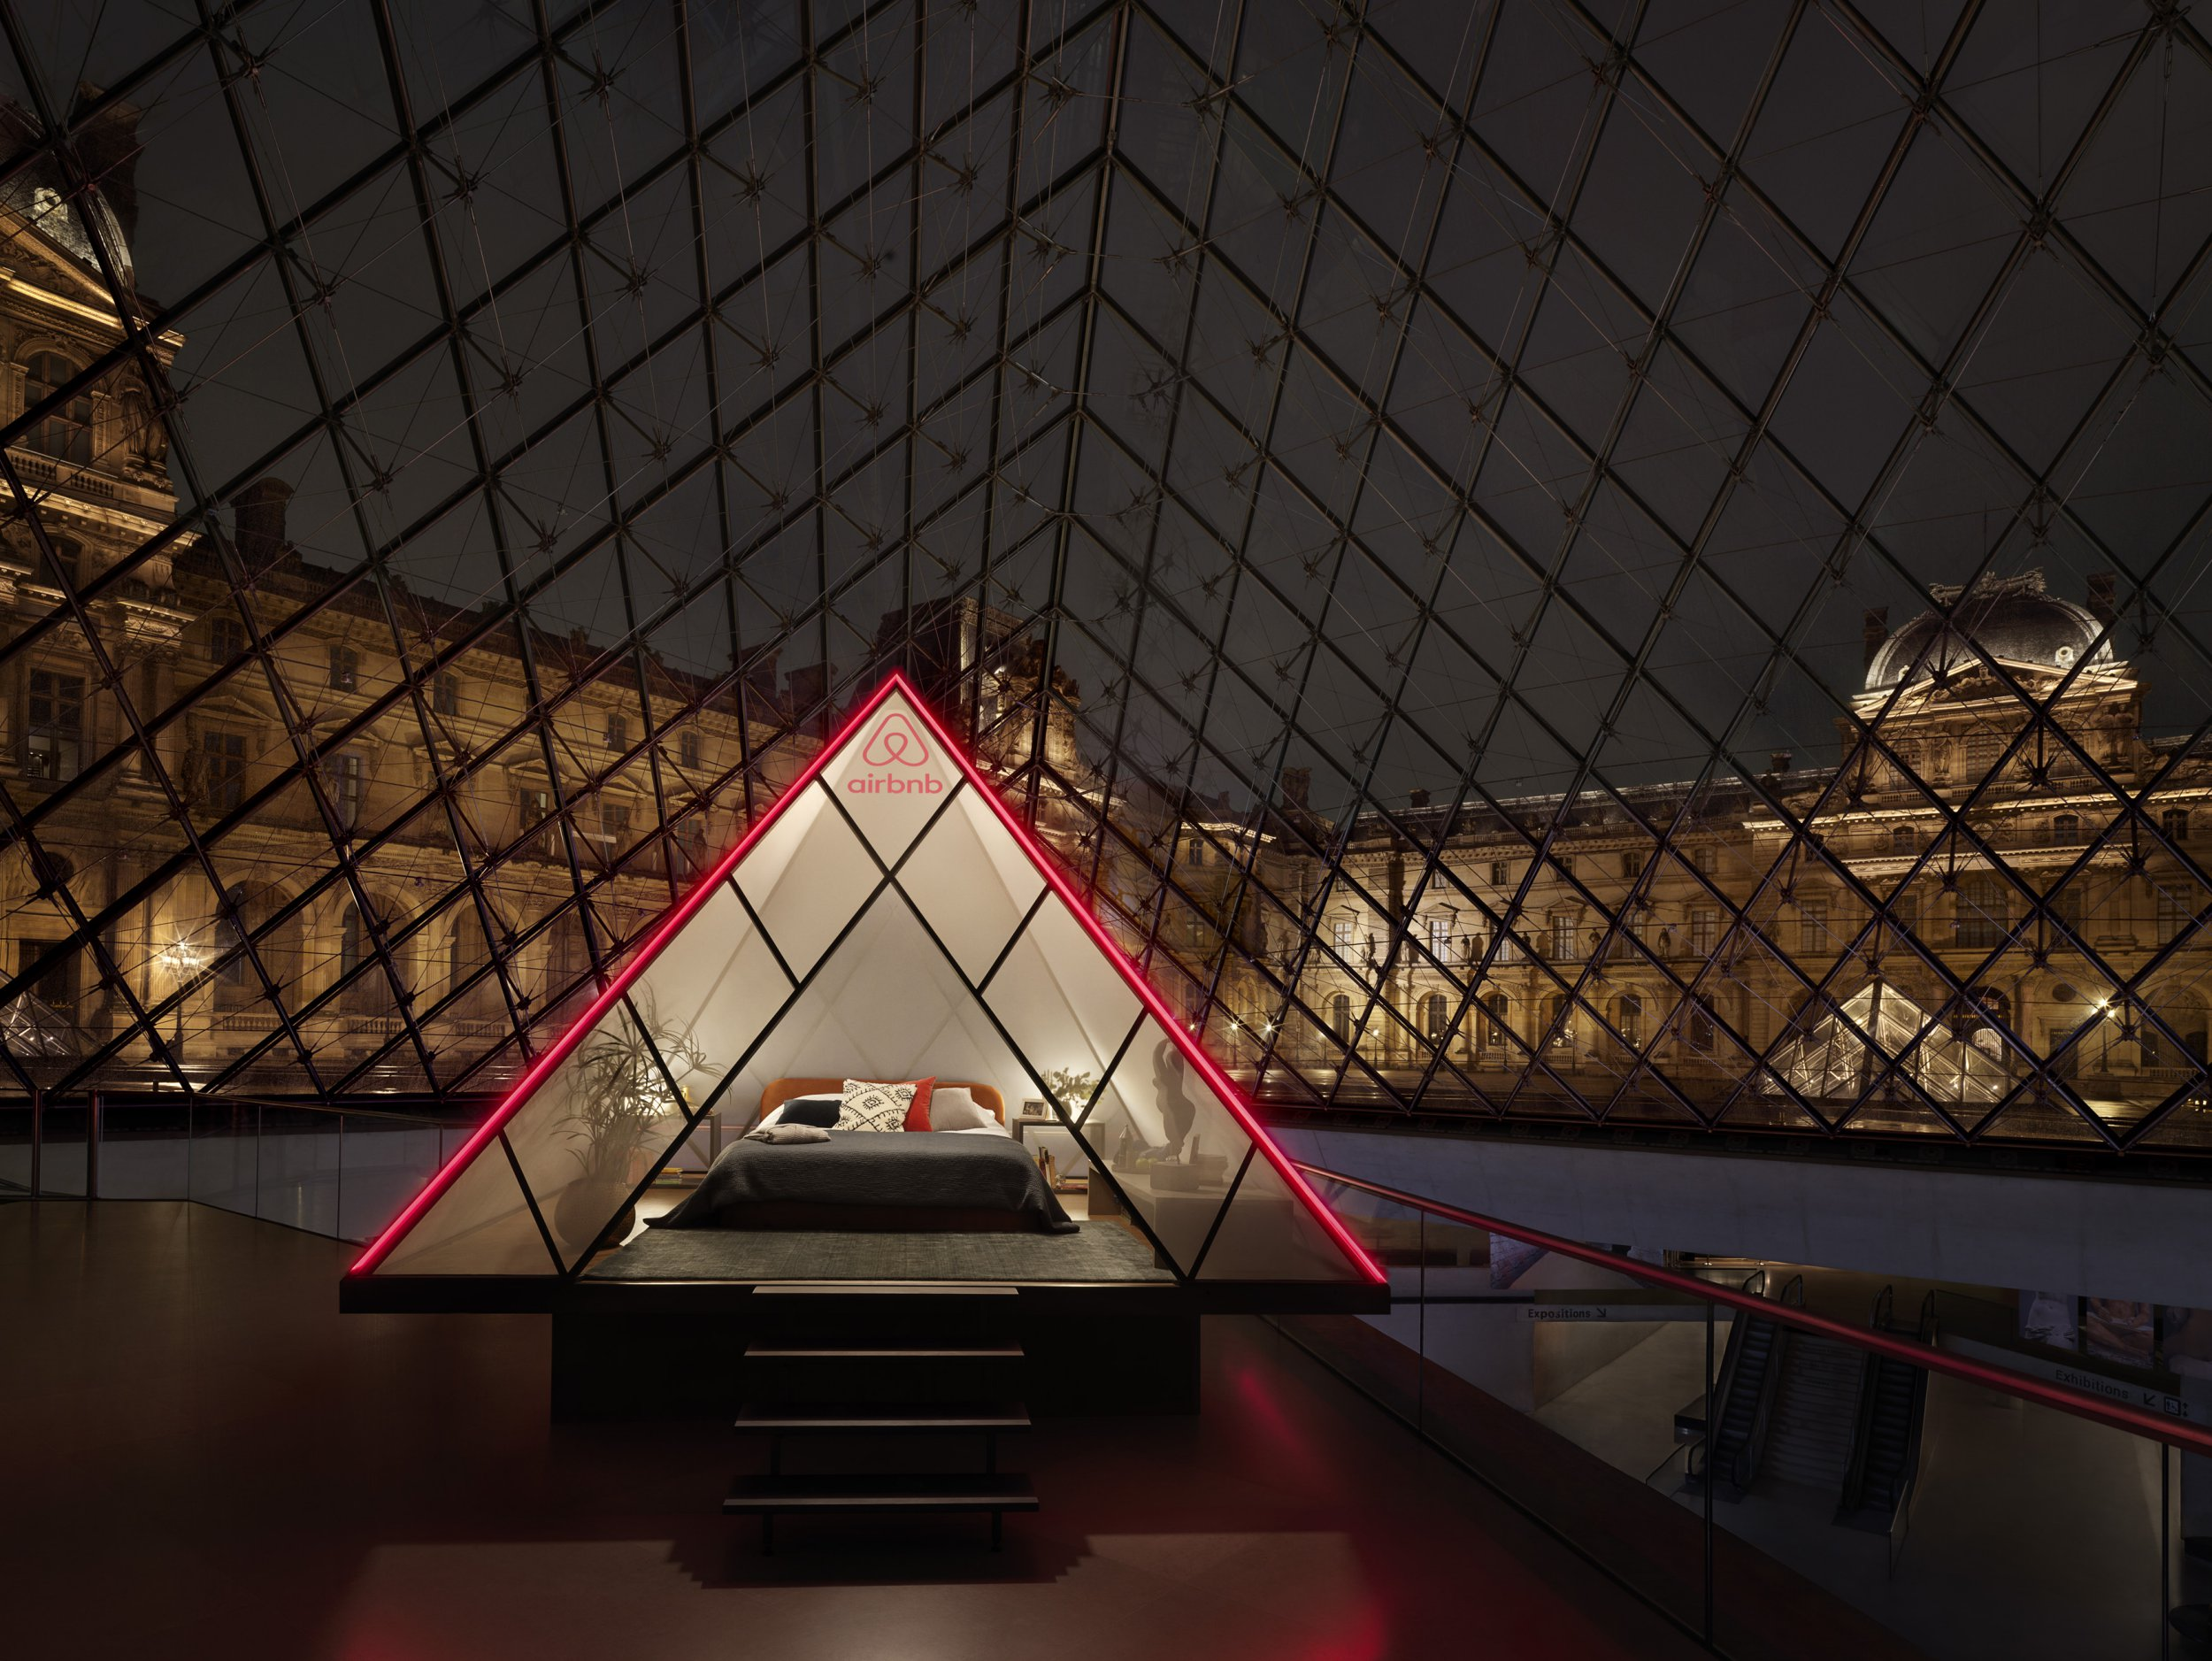 You can sleep at the Louvre for a true Night at the Museum experience